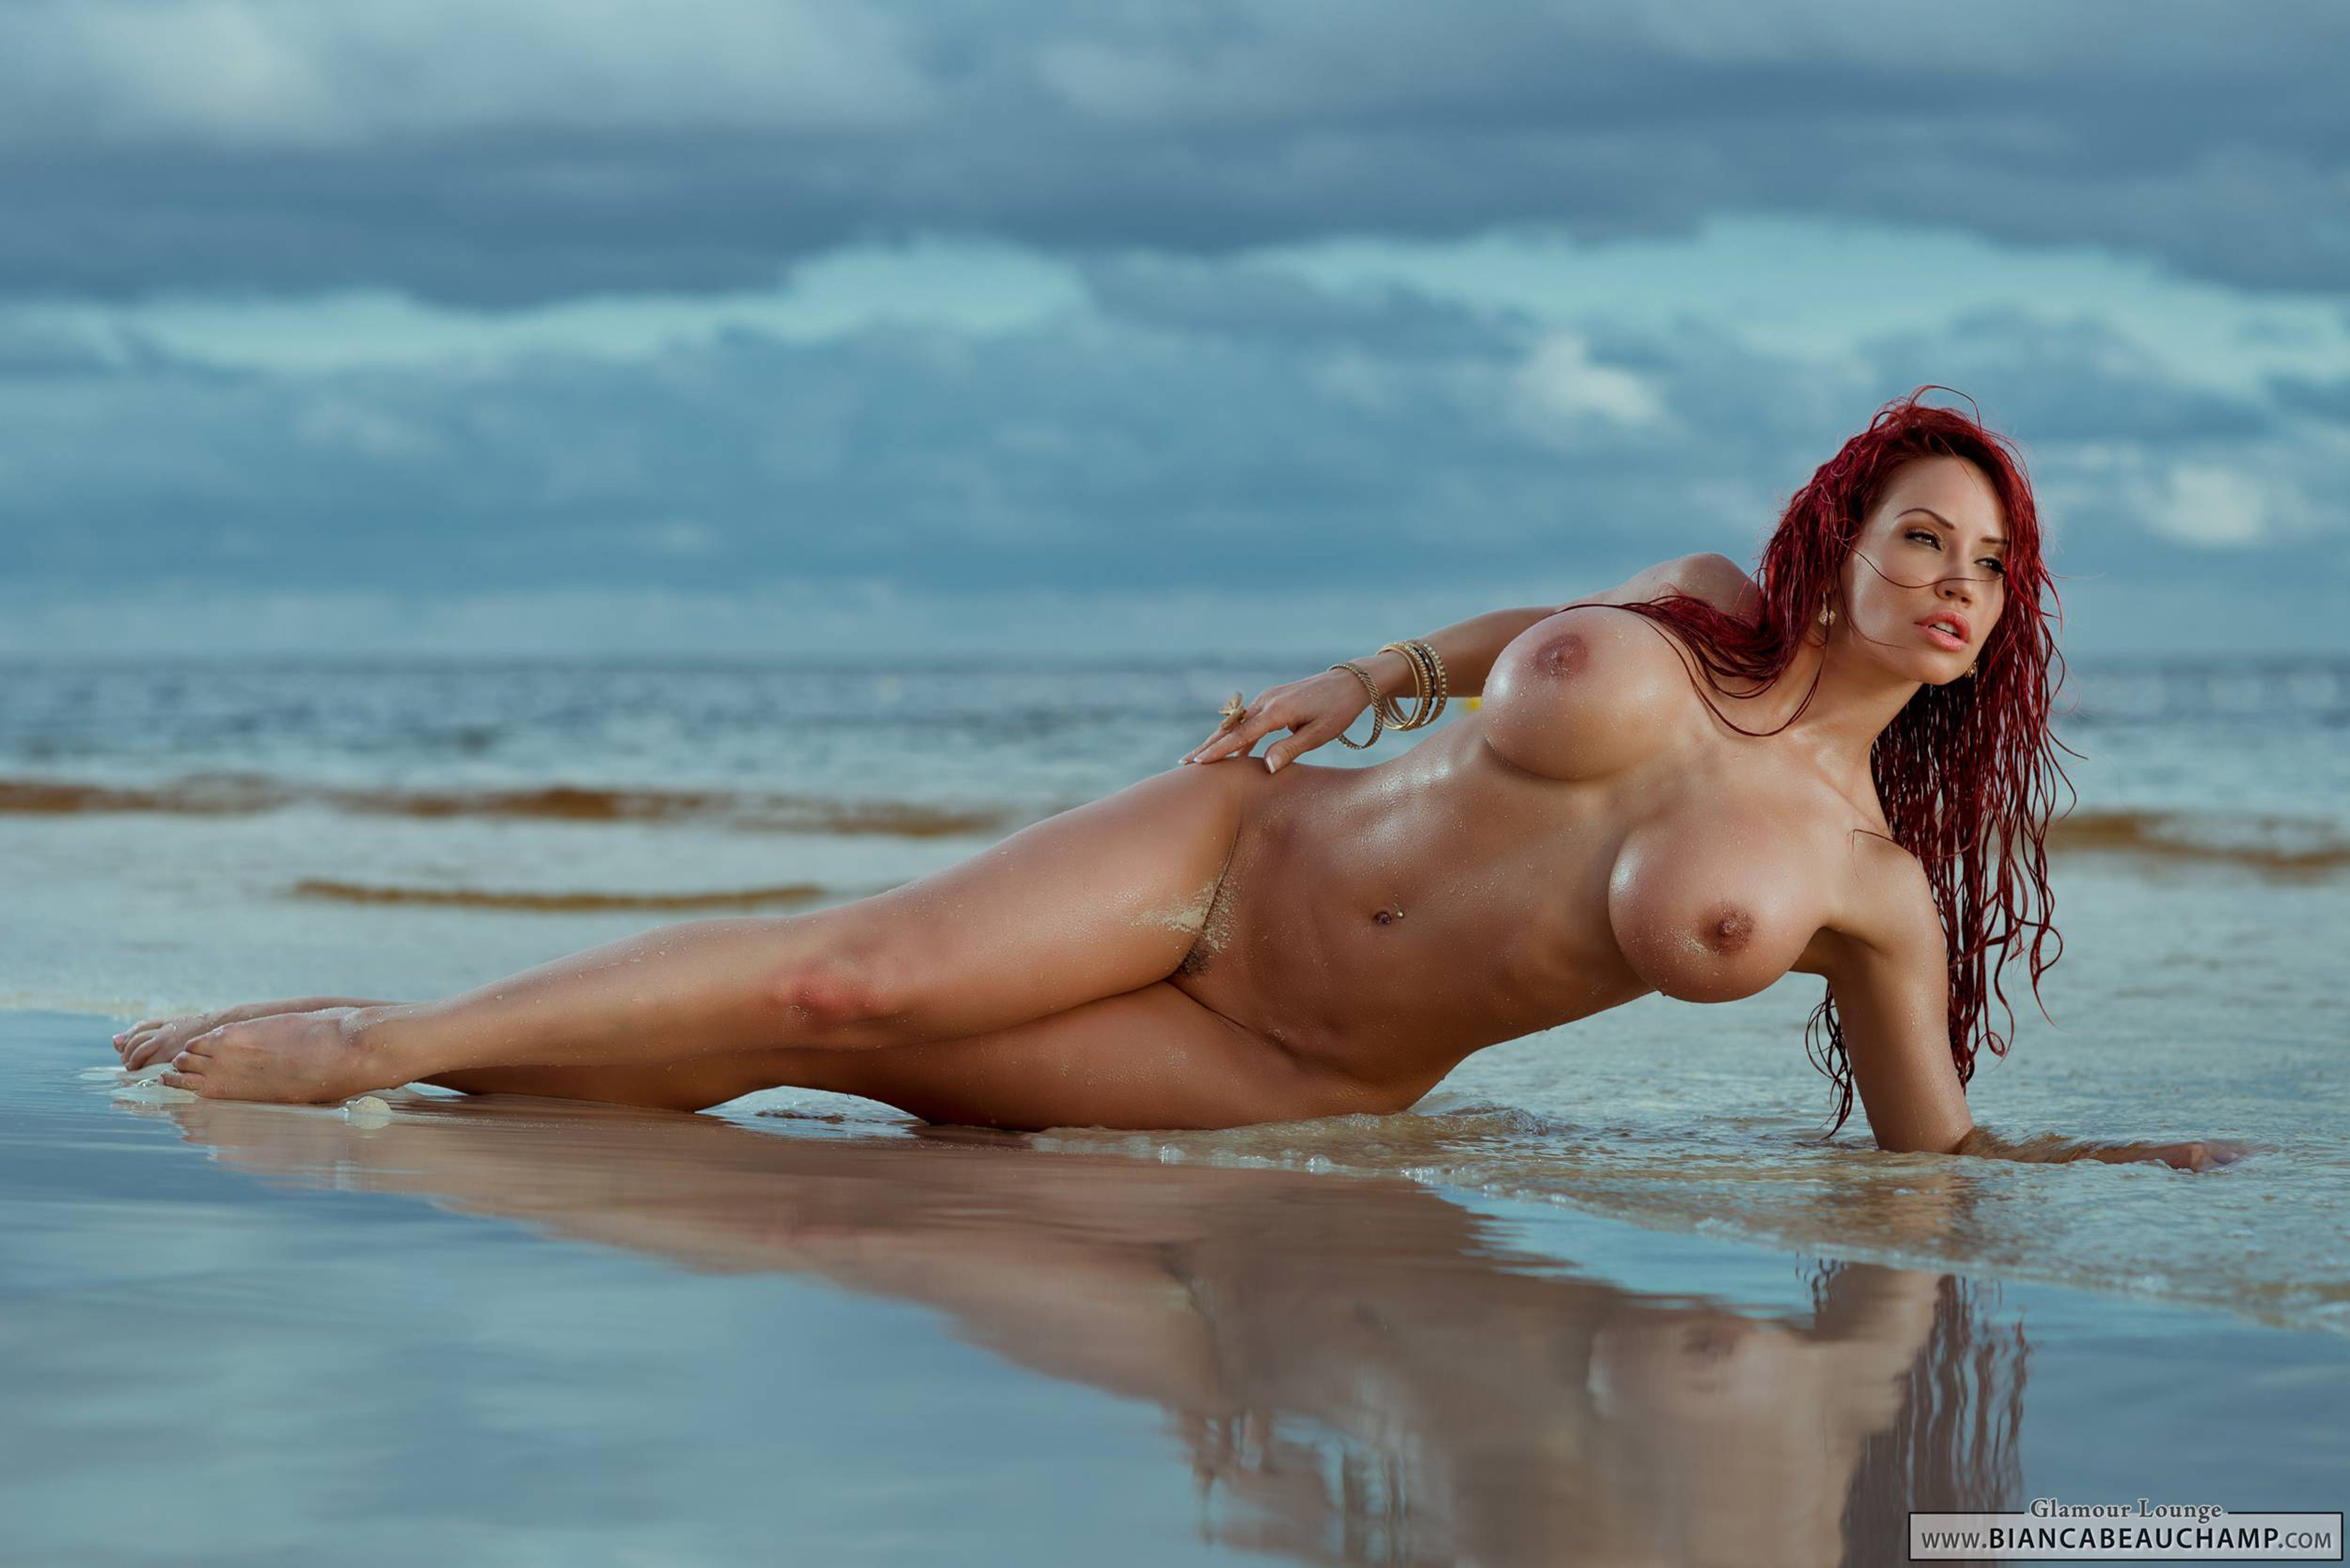 Wallpaper Bianca Beauchamp, Sand, Water, Nude, Outdoors -4671